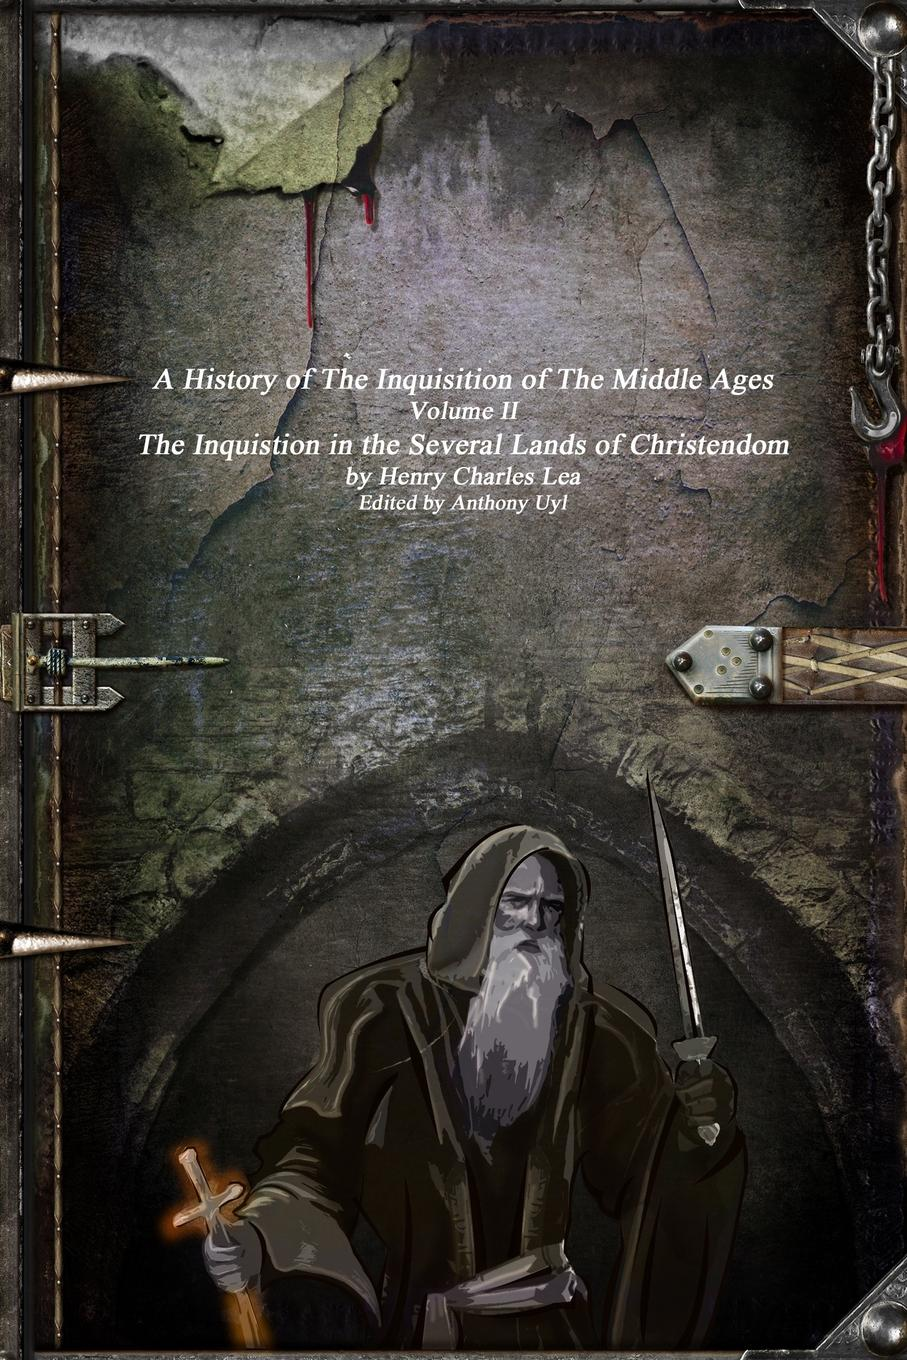 Henry Charles Lea A History of The Inquisition of The Middle Ages. The Inquistion in the Several Lands of Christendom dominion of god – christendom and apocalypse in the middle ages